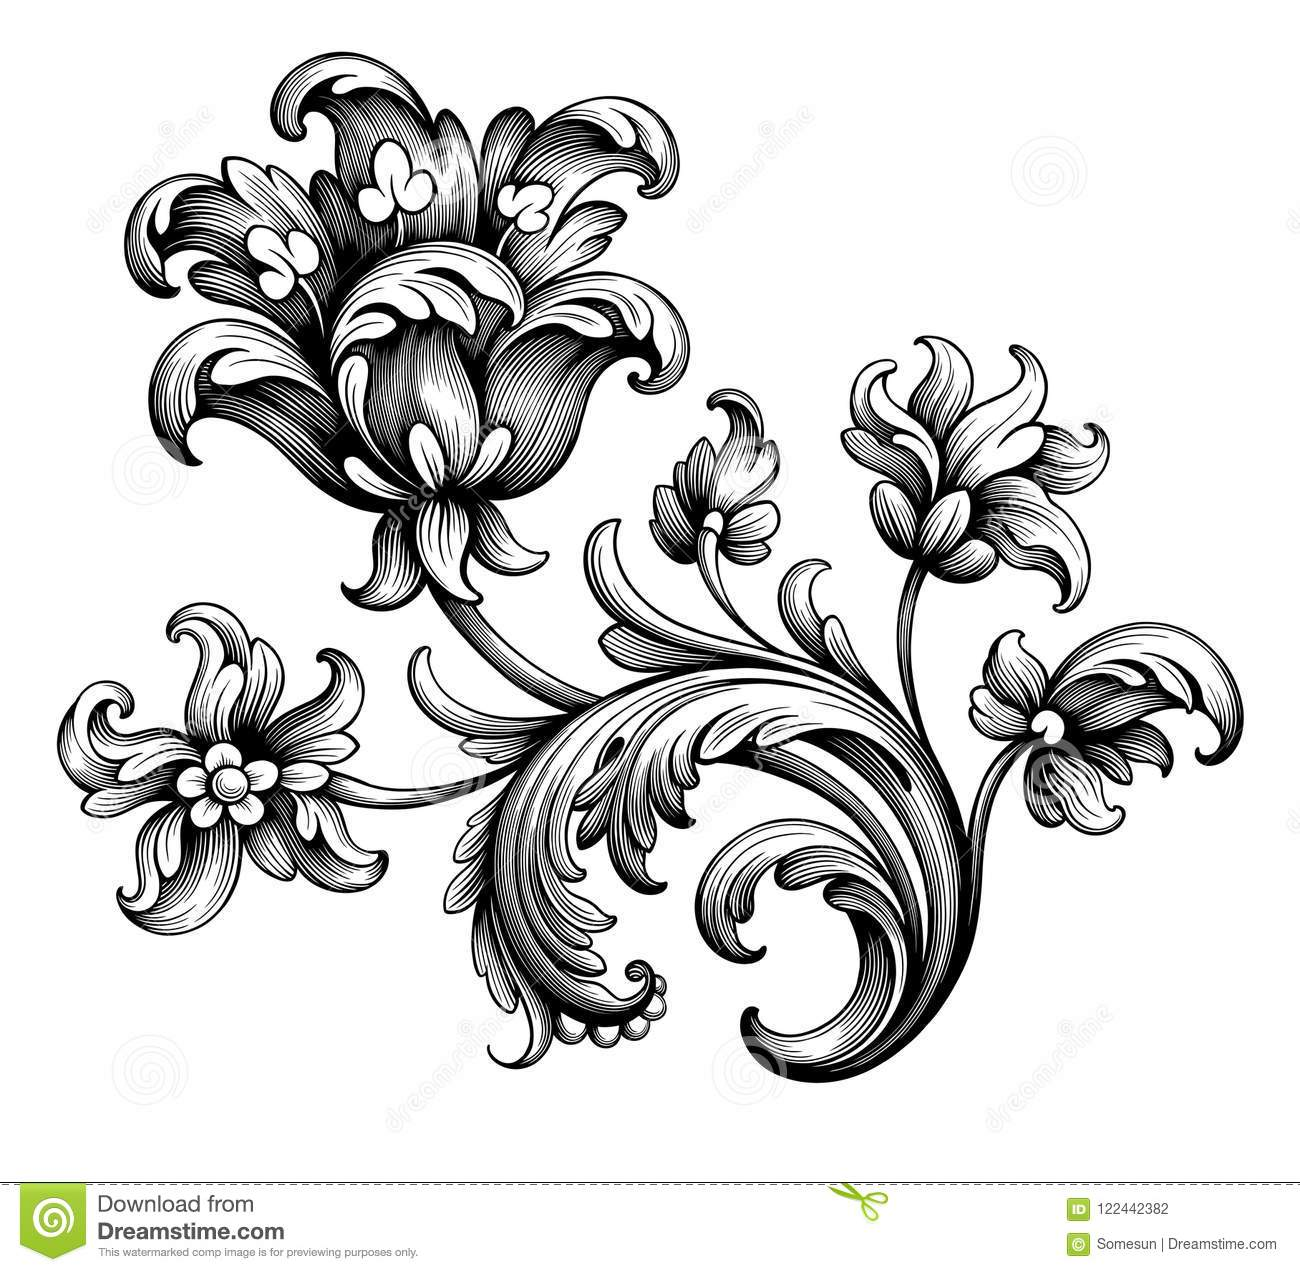 Tulip peony flower vintage Baroque Victorian frame border floral ornament scroll engraved retro pattern tattoo filigree vector